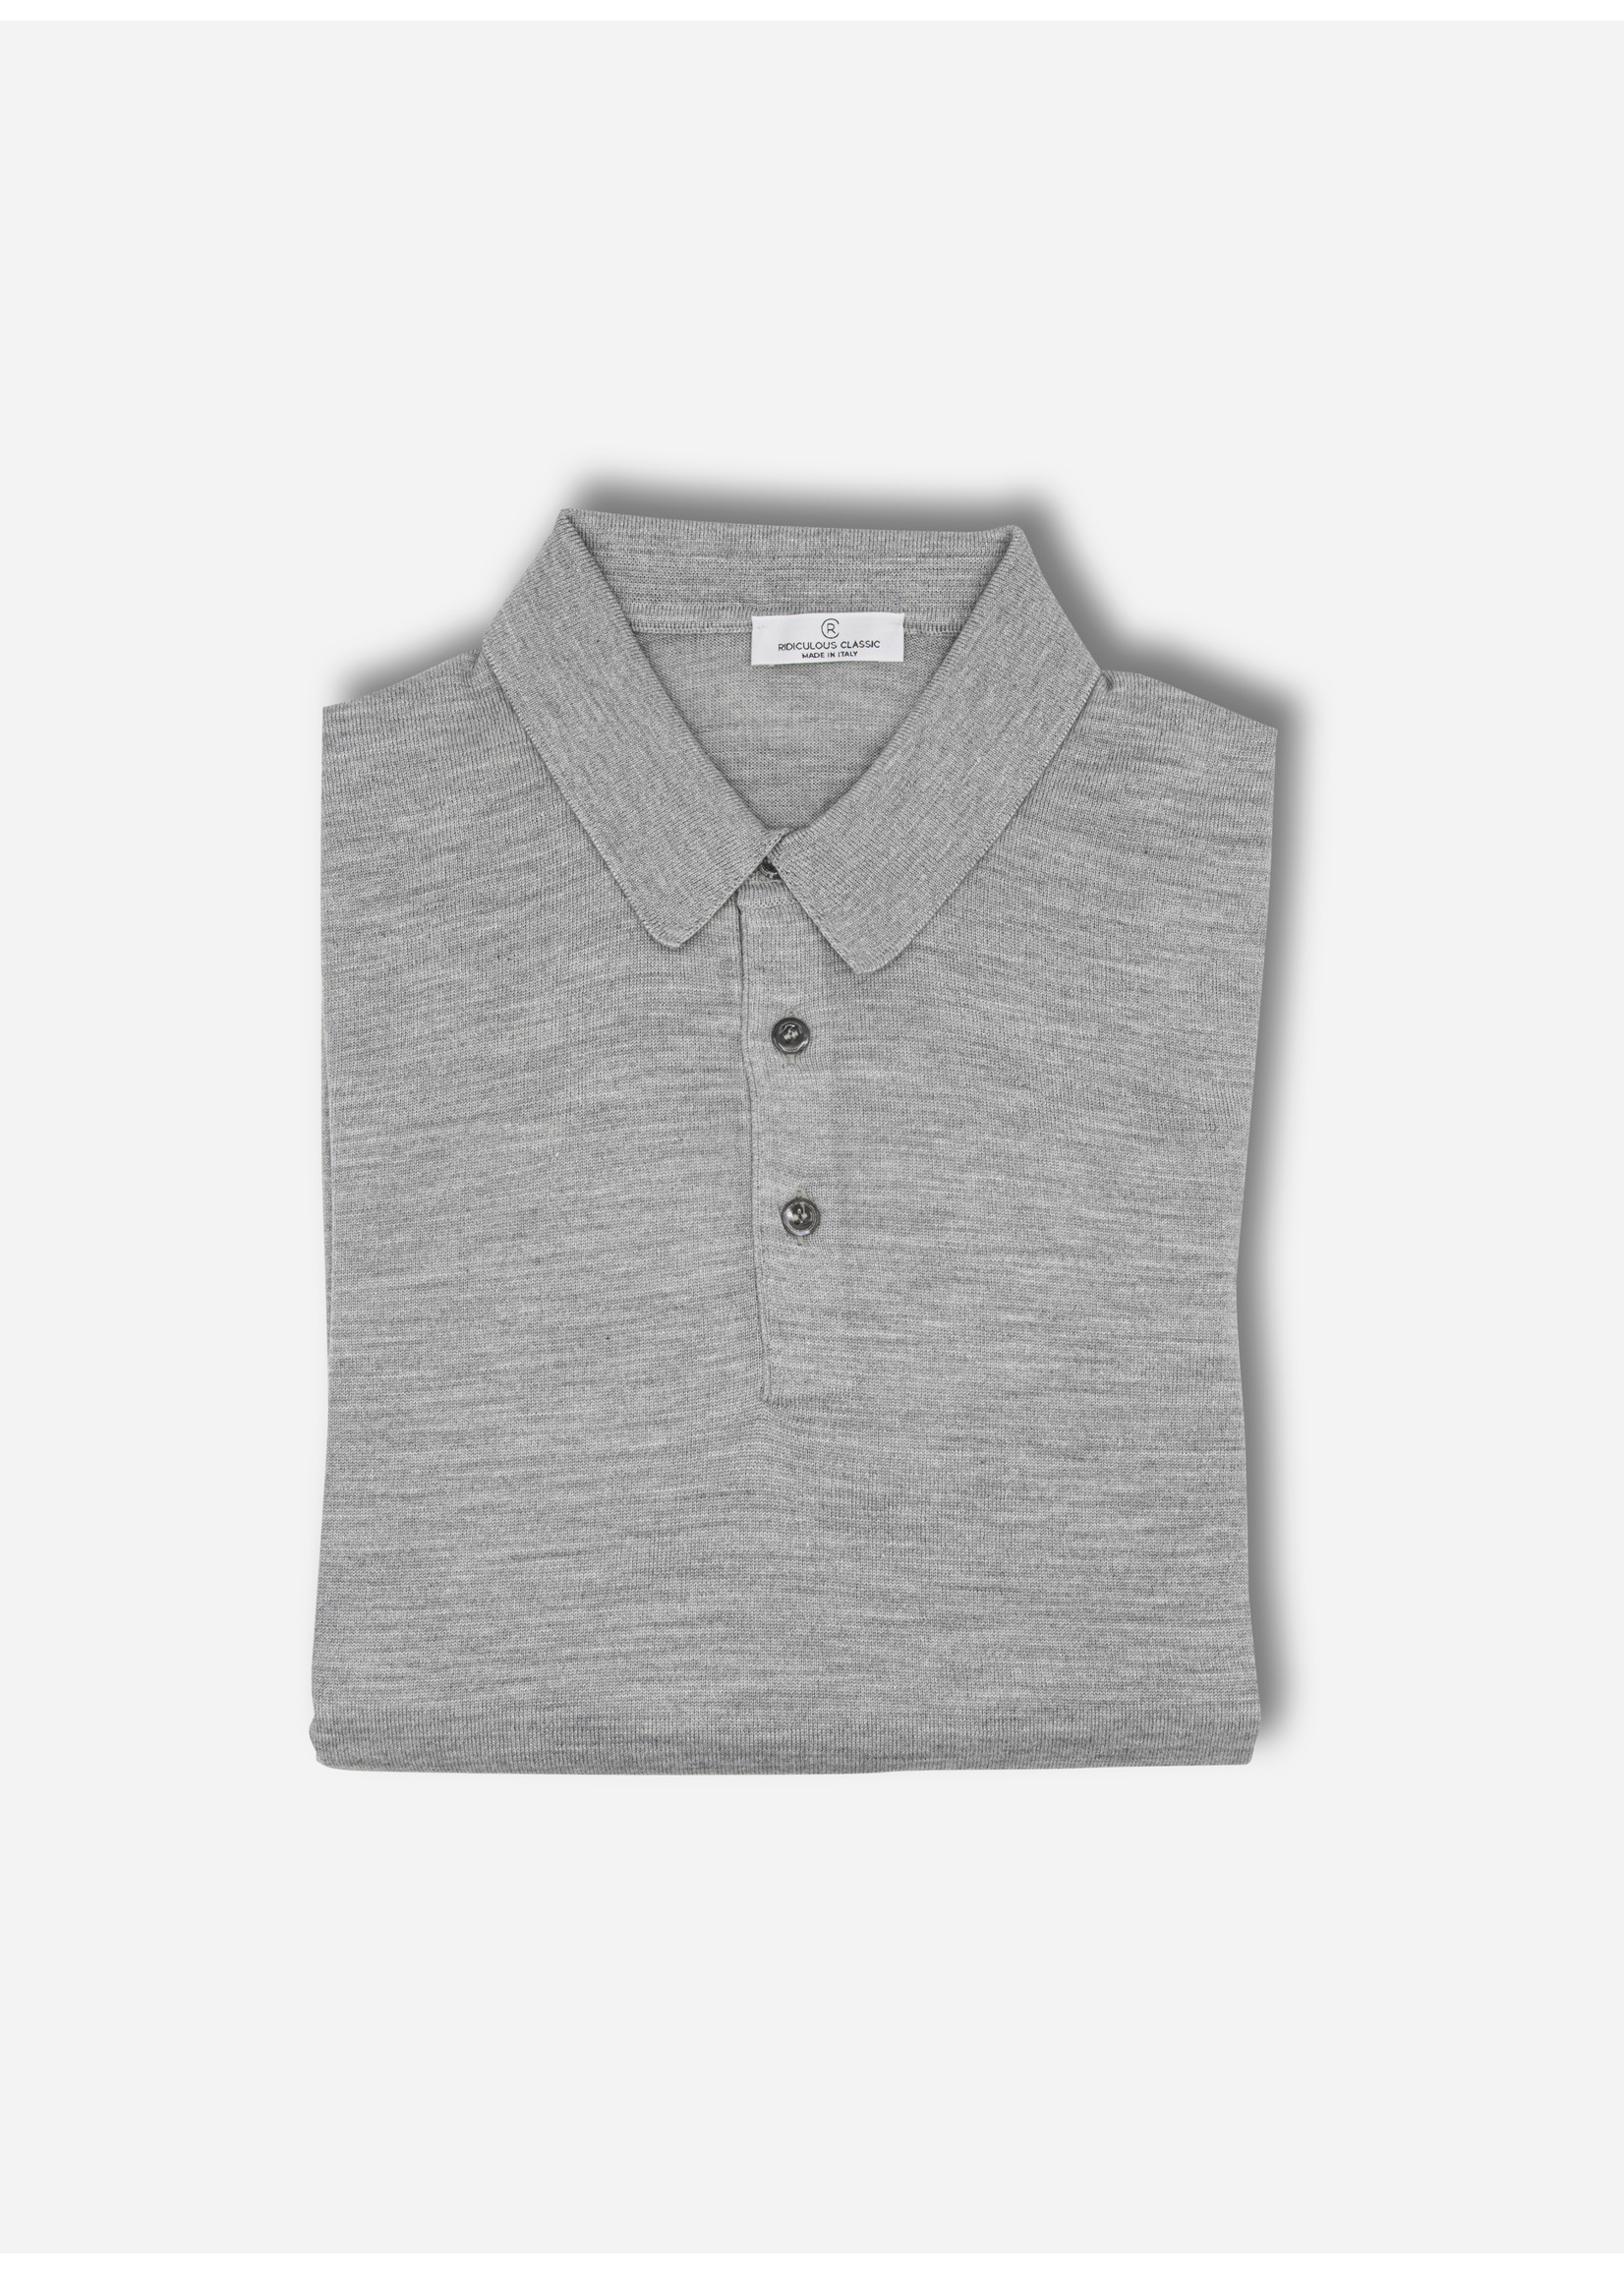 Ridiculous Classic Polo ls grey tennis